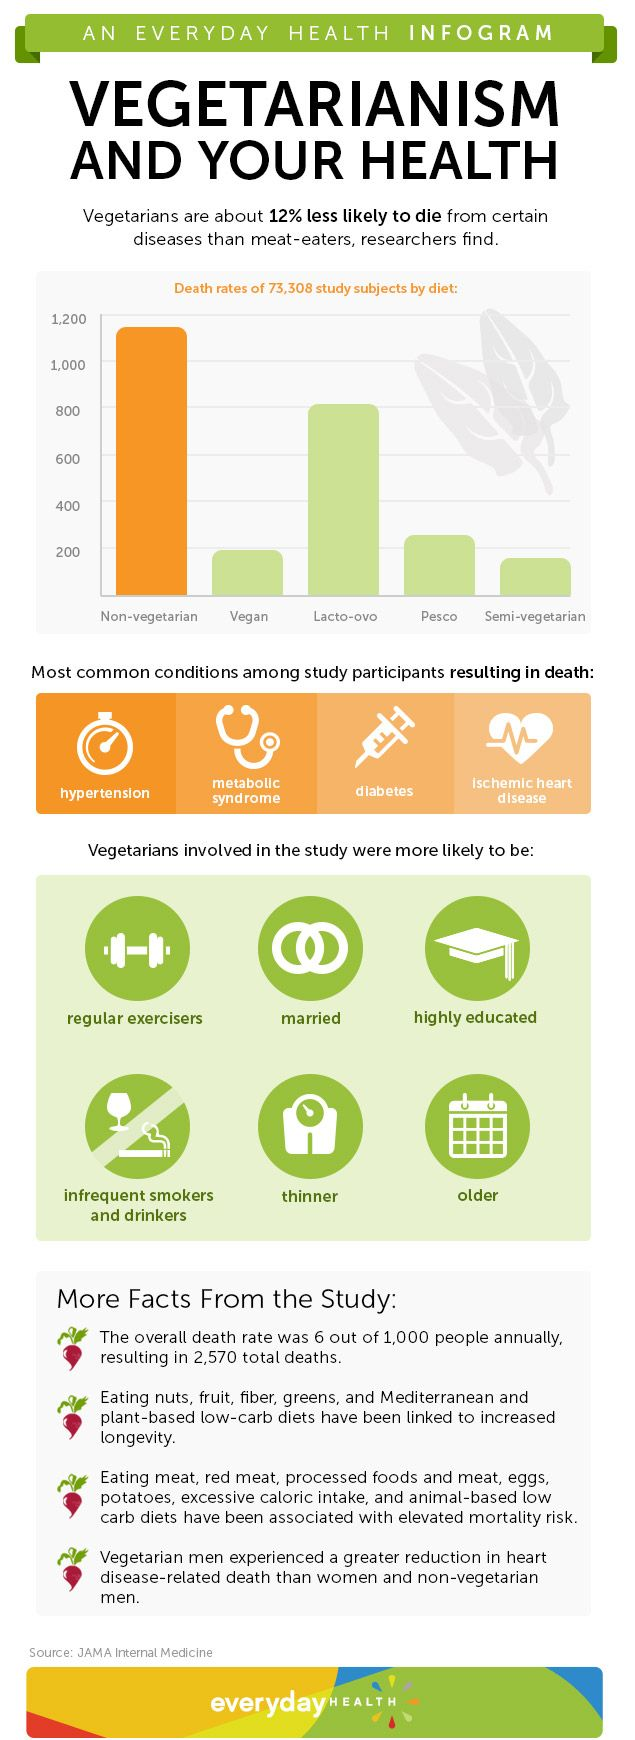 Vegetarians! Doing research Paper on how Vegetarianism is *healthier* than any other diet. Have info to share?